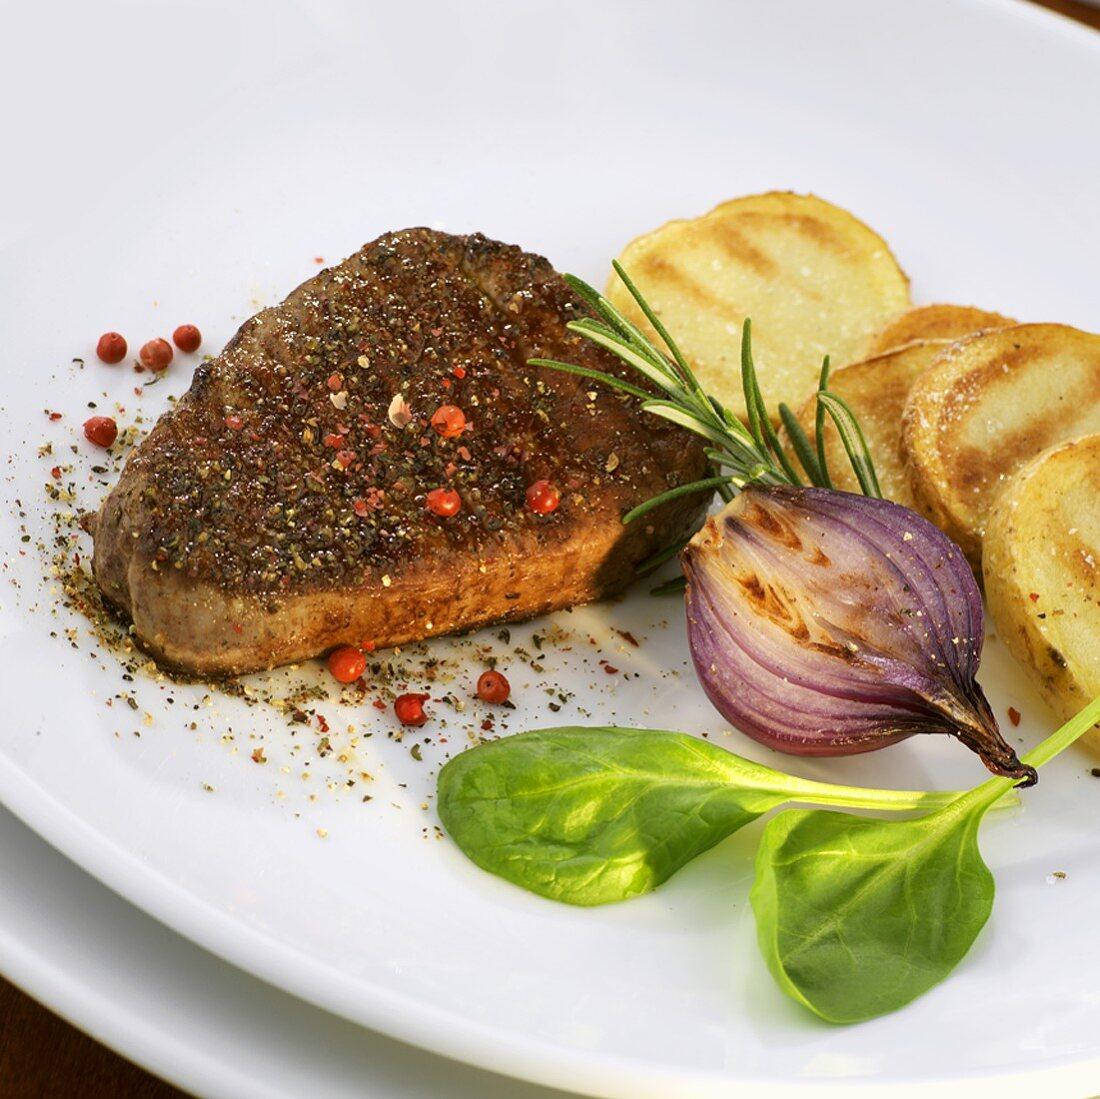 Peppered steak with potato slices and onion